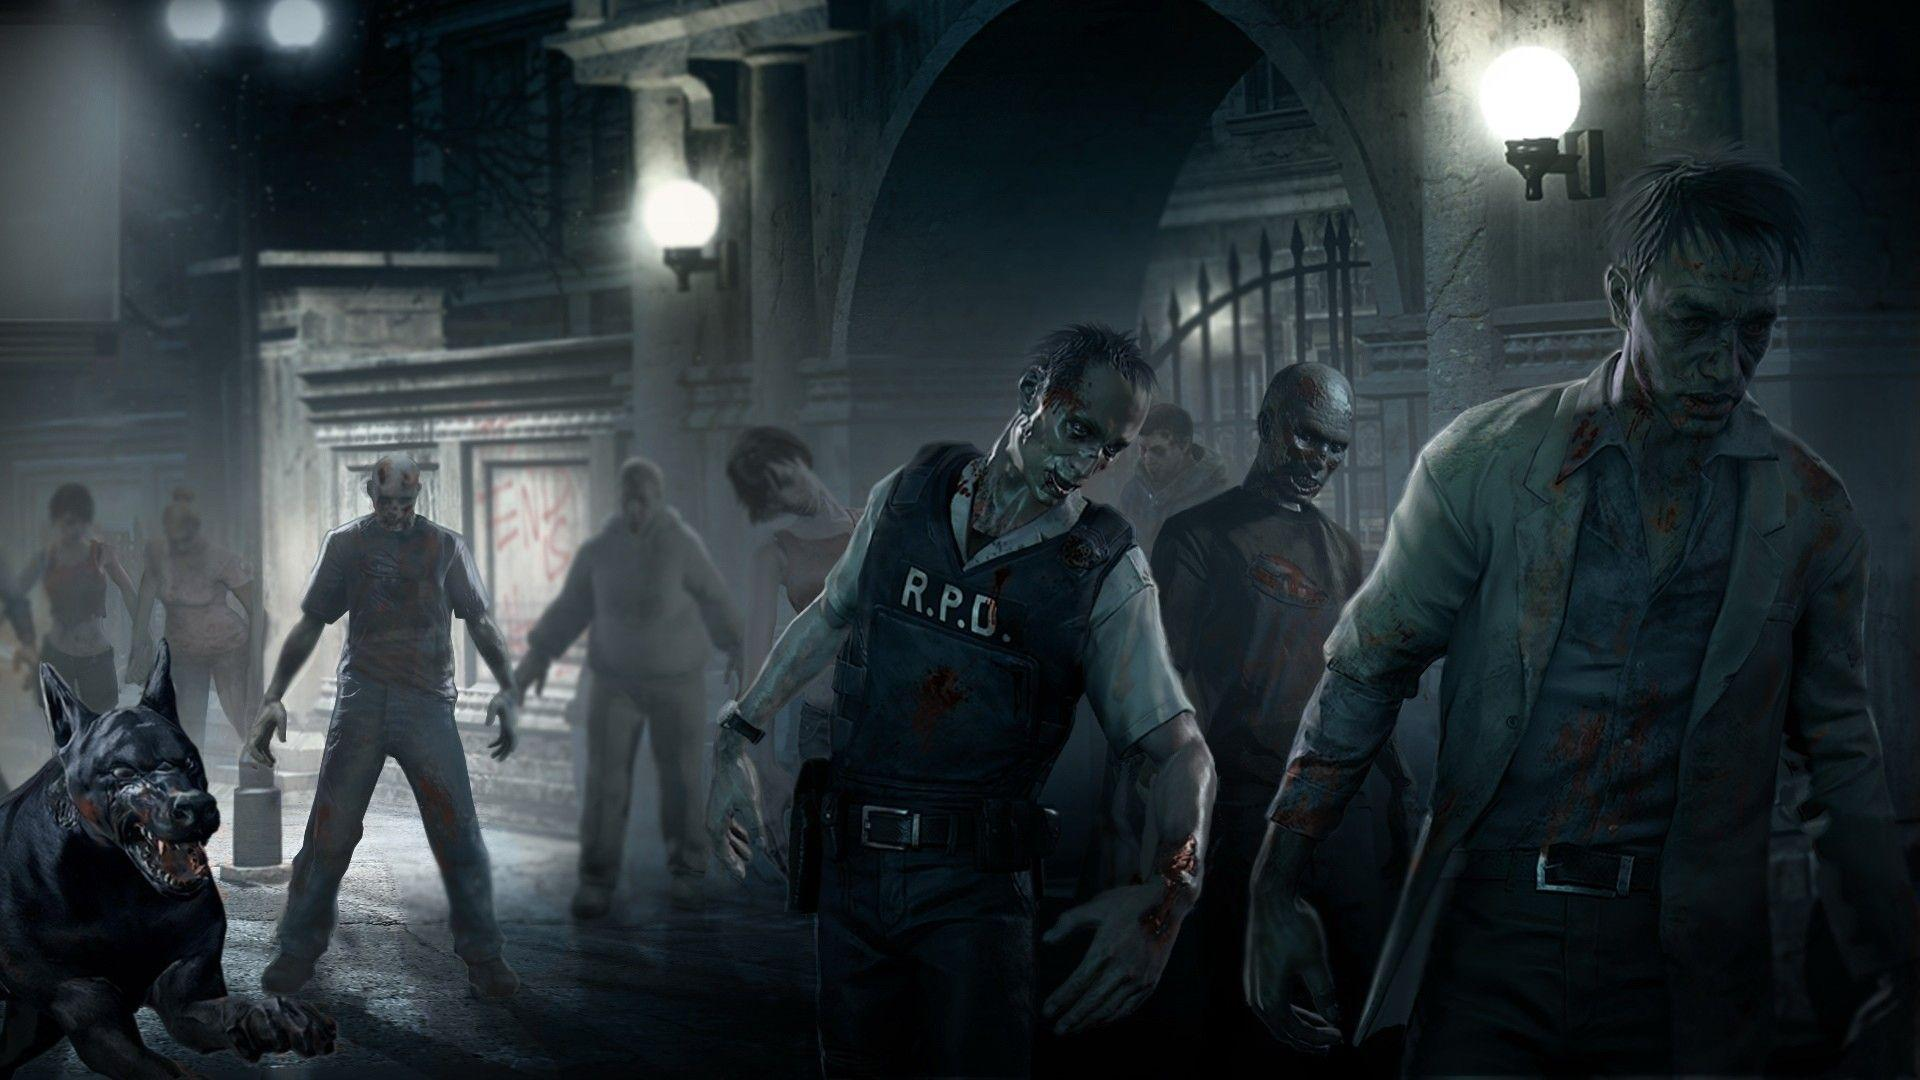 Resident Evil Zombie wallpapers 223098